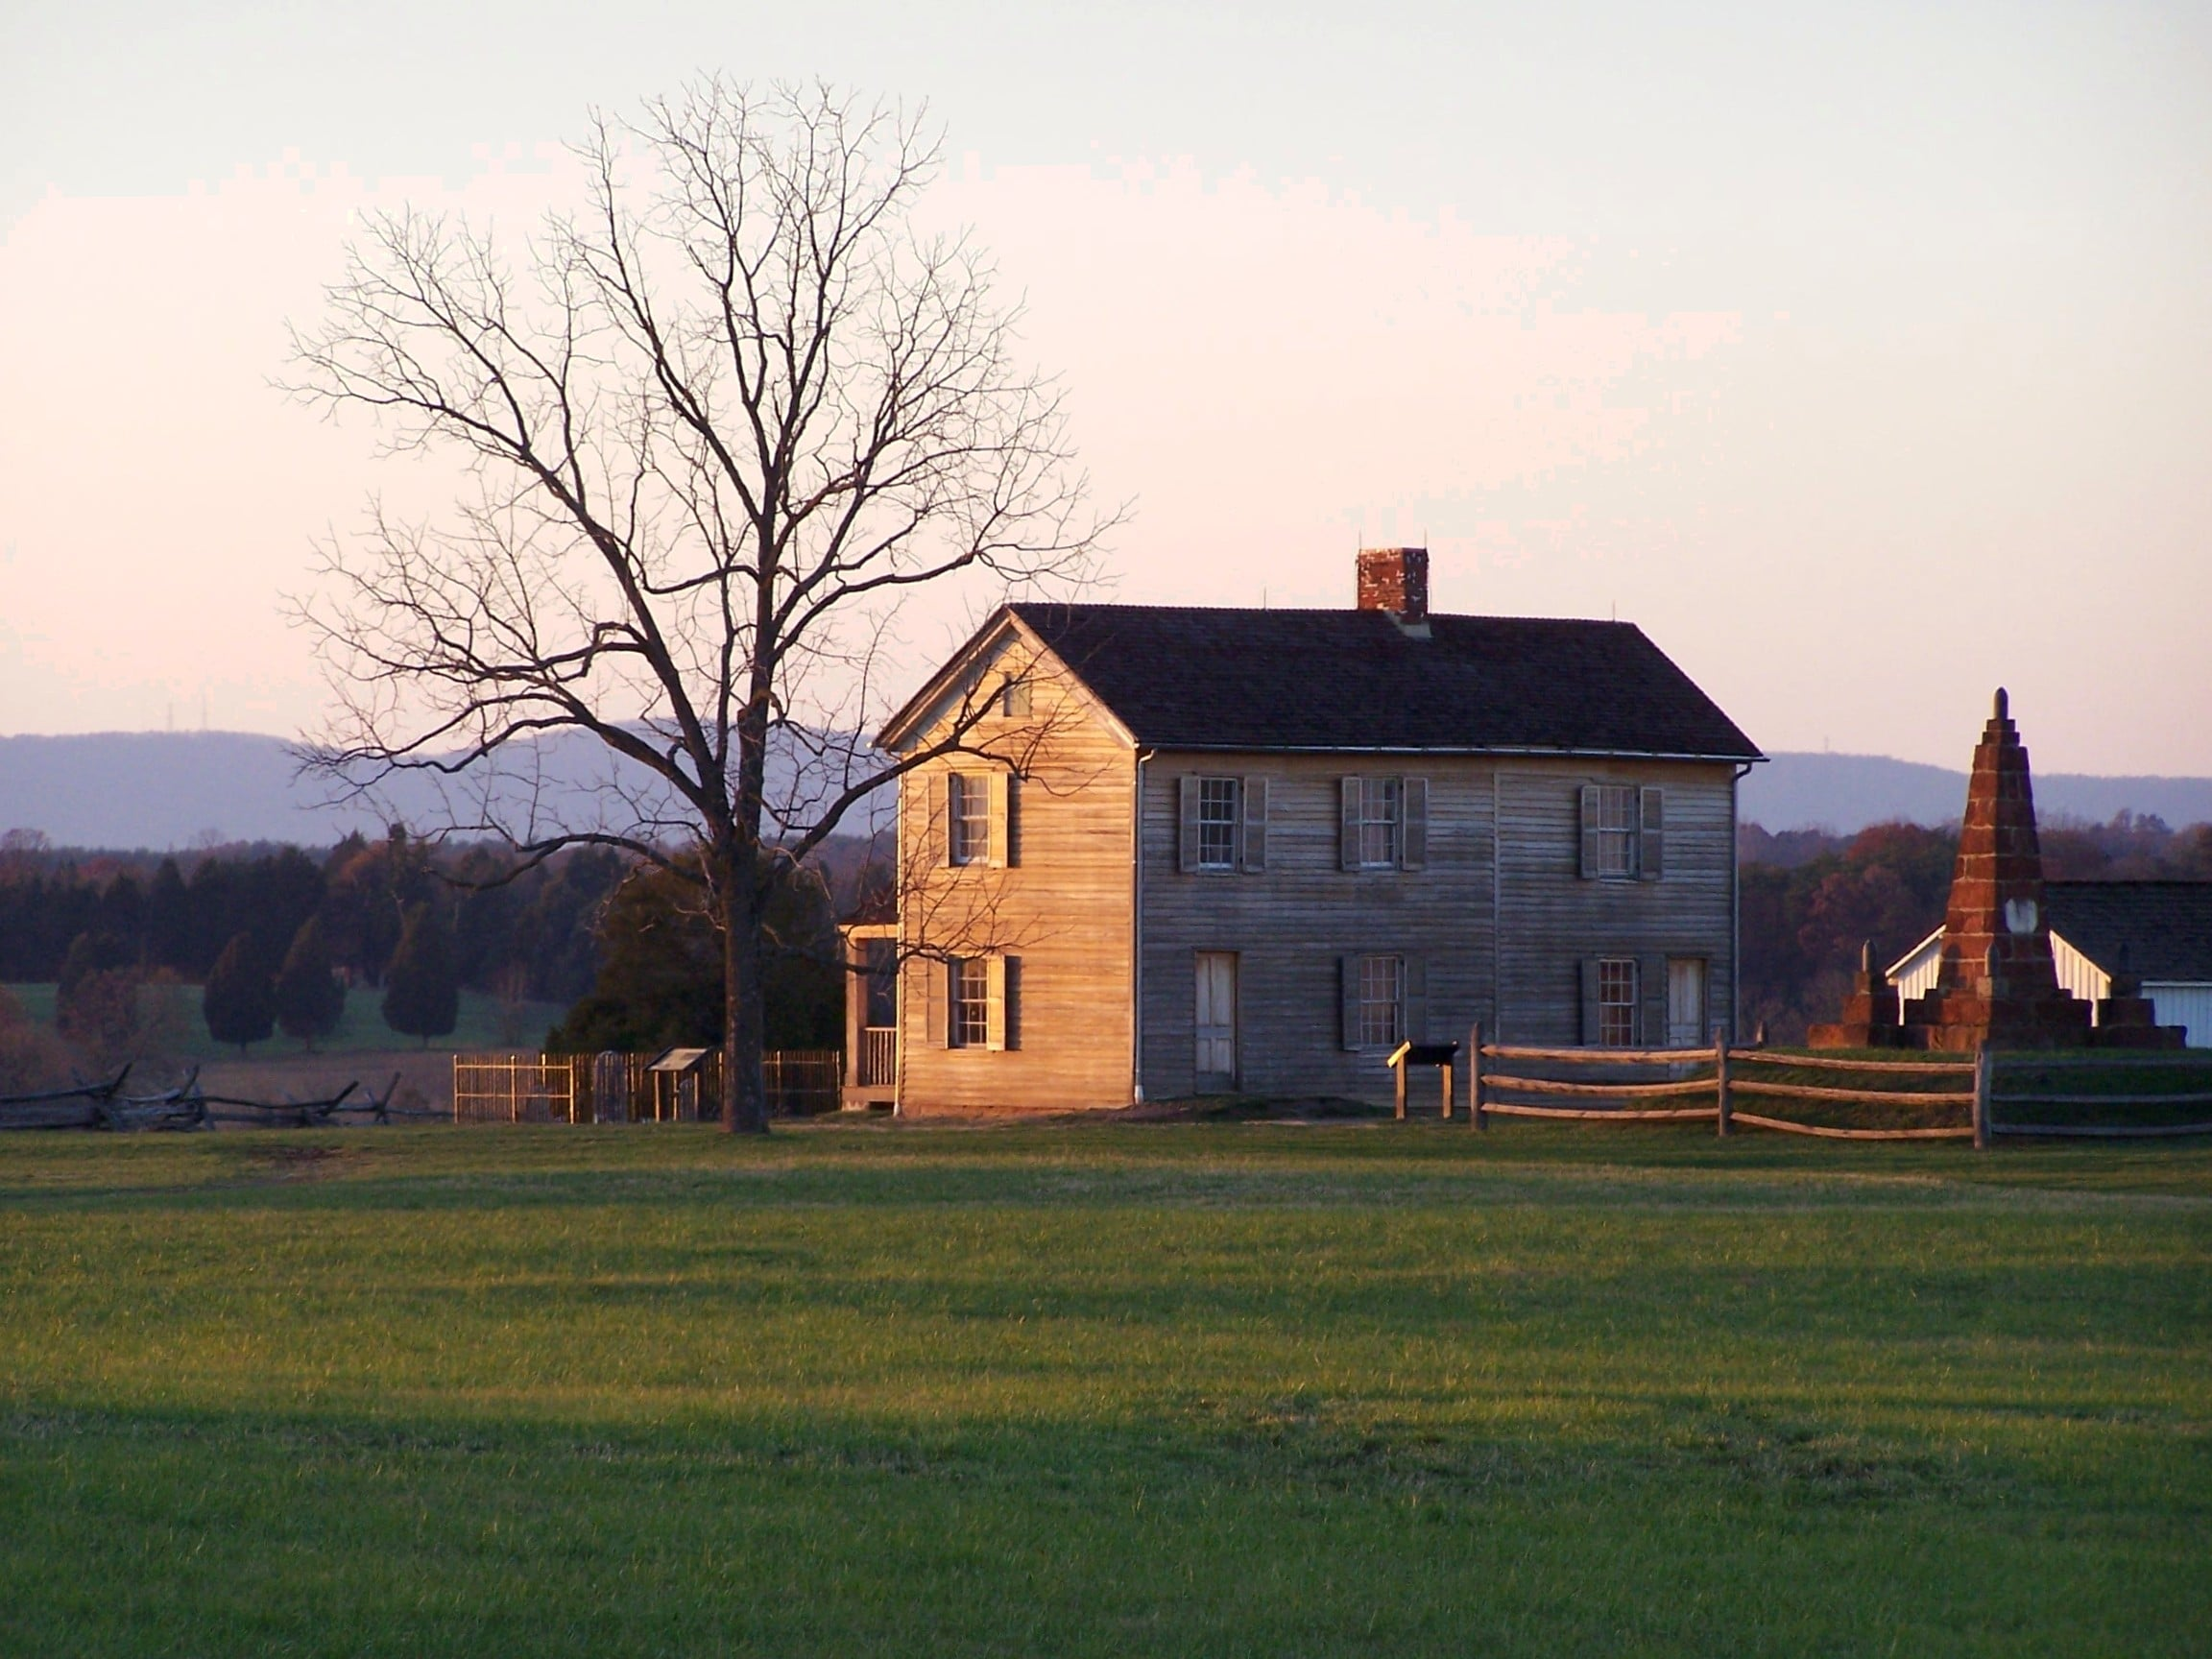 Judith Henry House, First Manassas Battlefield, Prince William County.